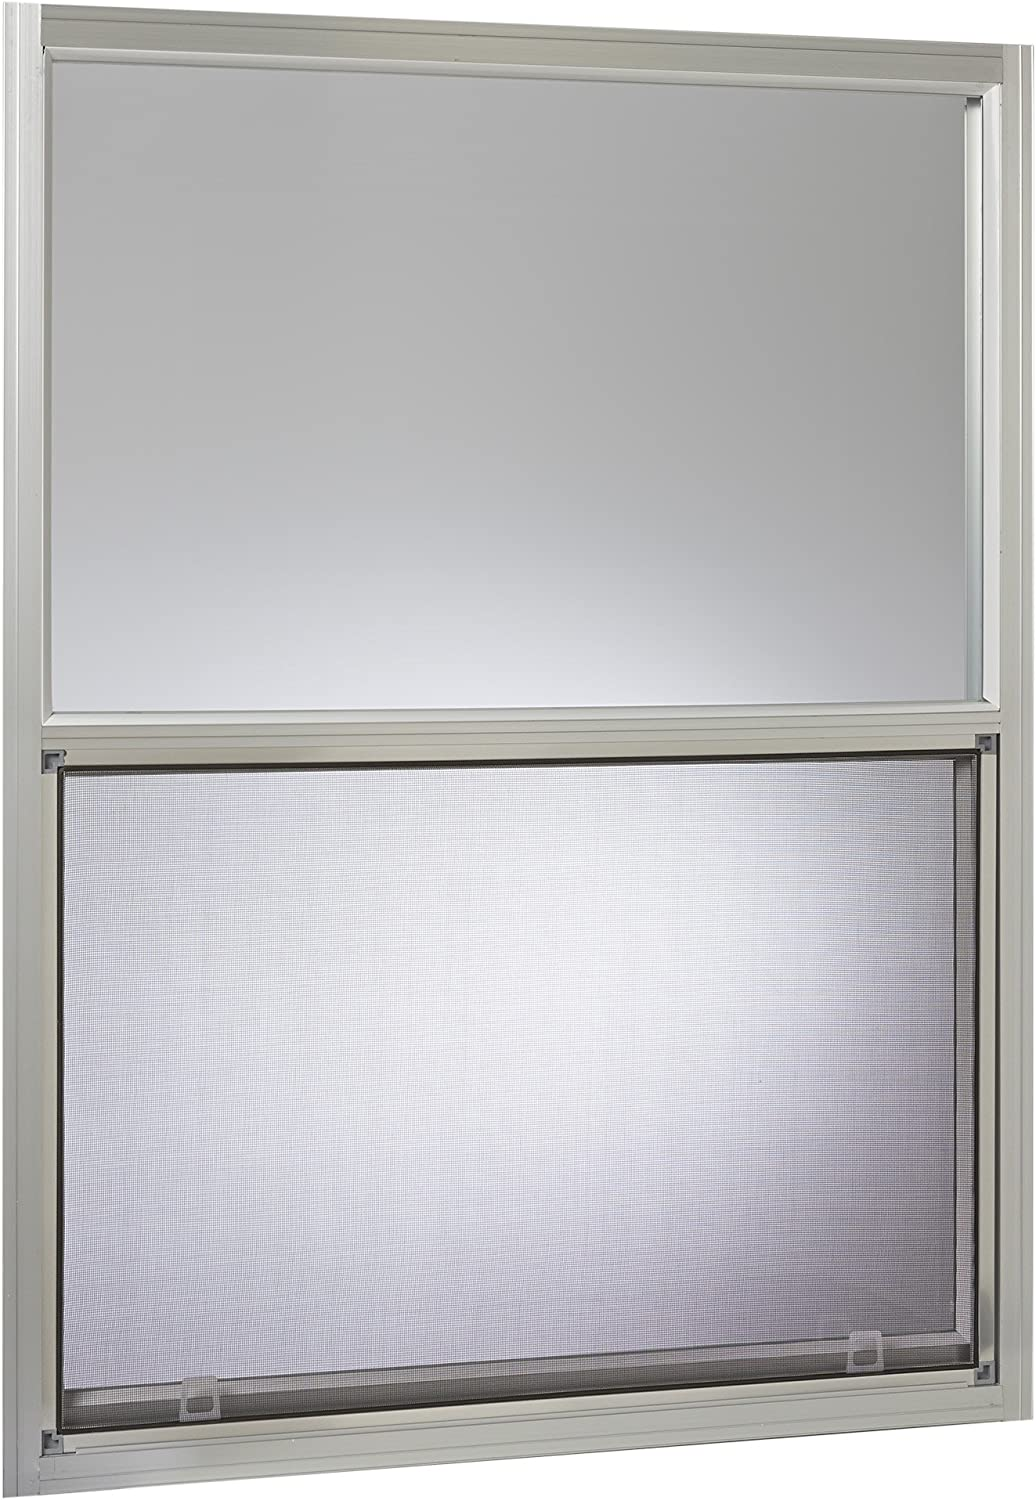 "Park Ridge Products AMHMF3040PR Park Ridge Mill Finish Aluminum Mobile Home Single Hung Window, 30"" x 40"", Silver"